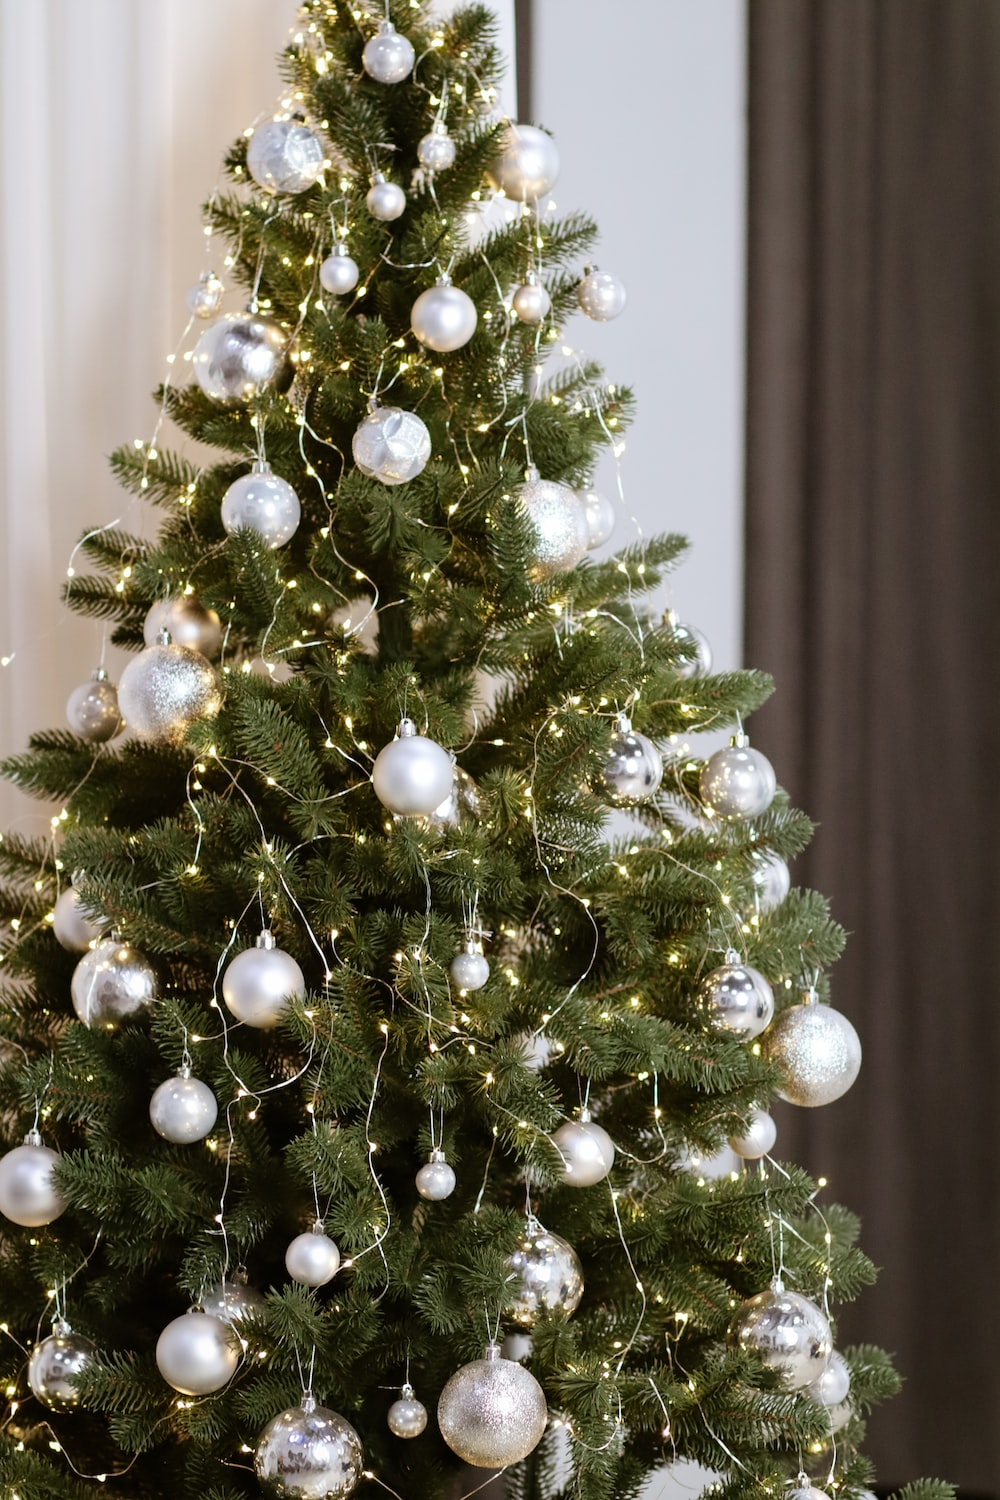 green Christmas tree with gray baubles